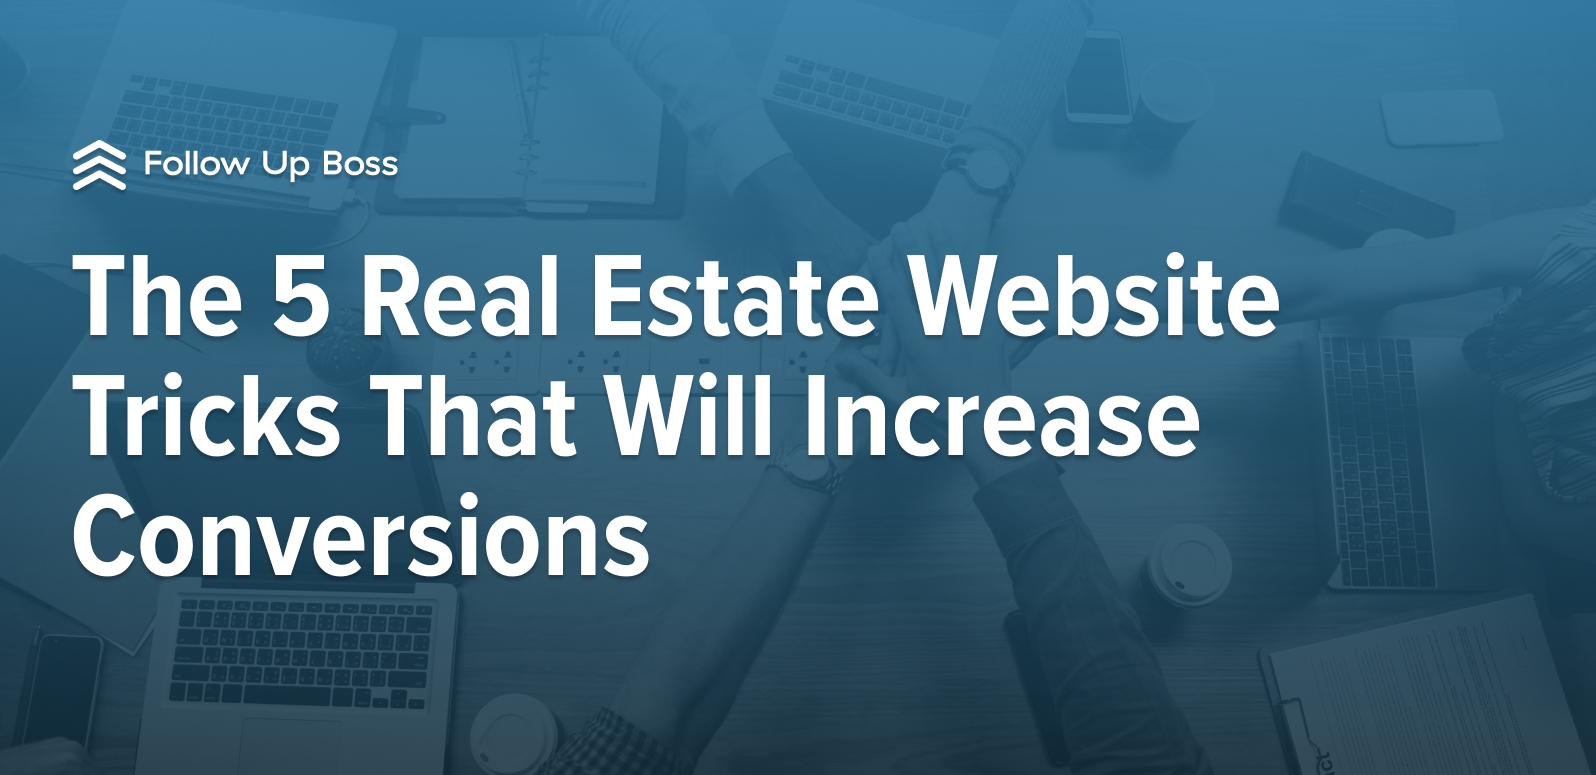 The 5 Real Estate Website Tricks That Will Increase Conversions